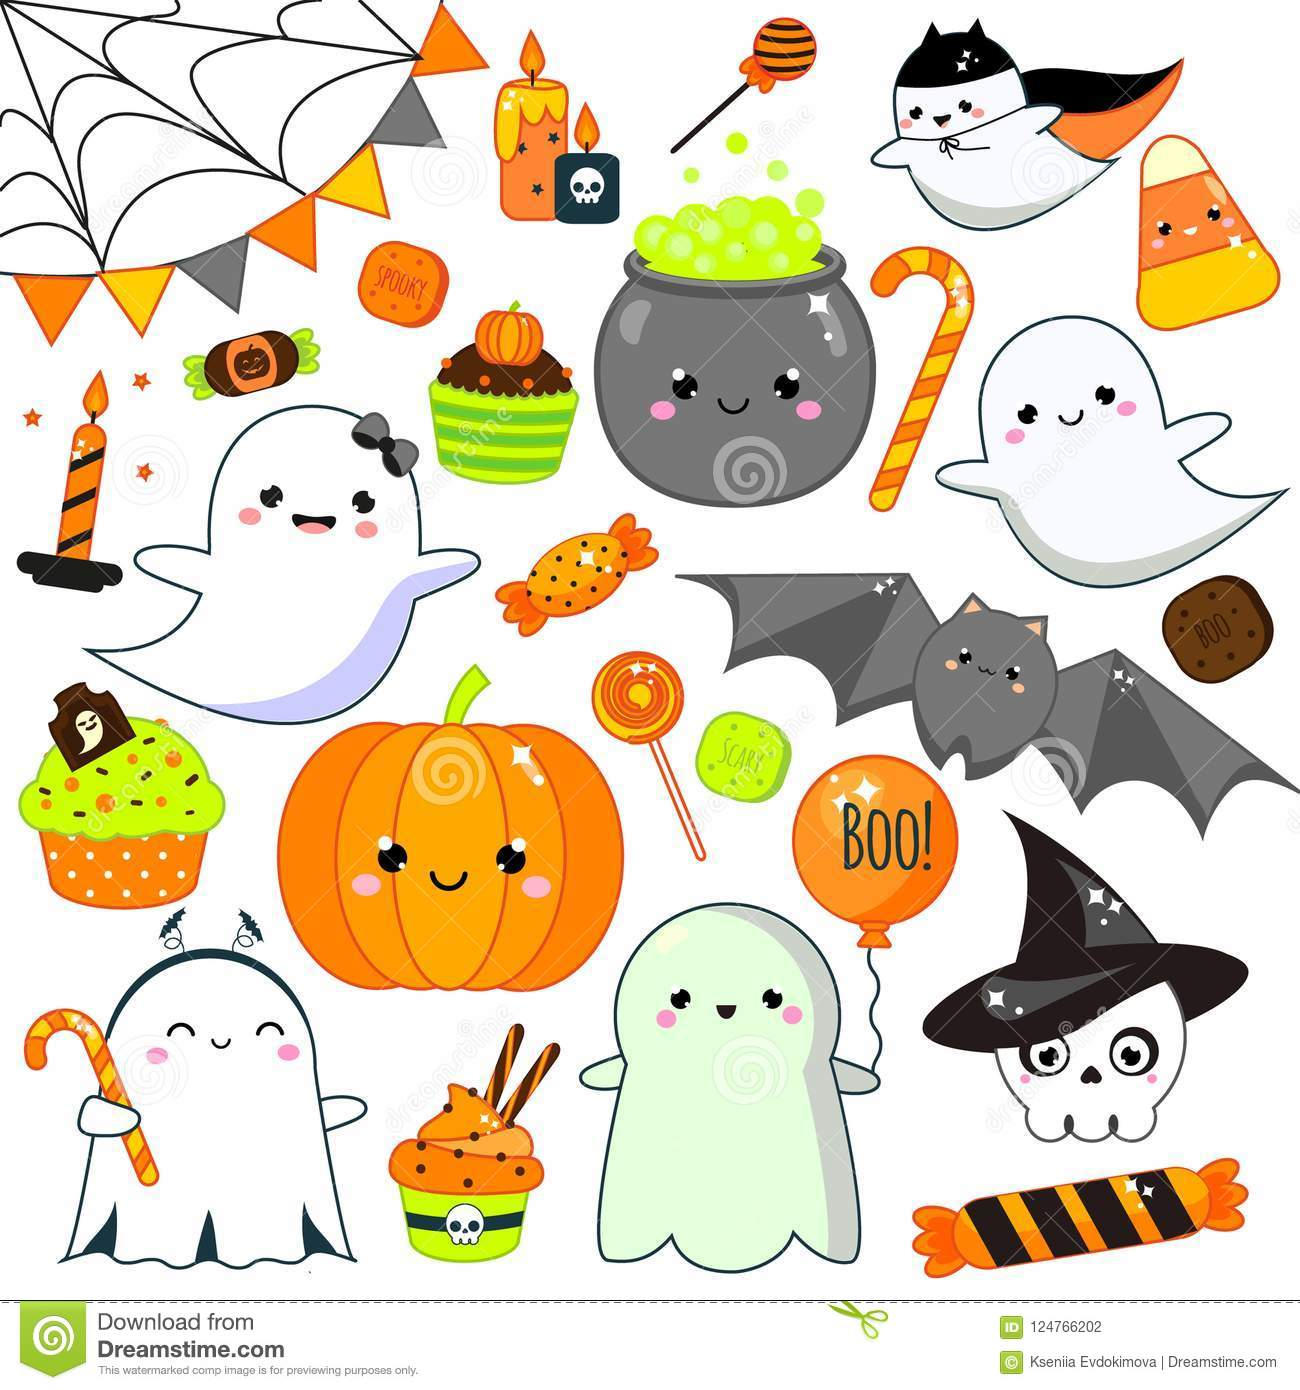 halloween stickers, patches, badges. cute pumpkin, ghosts, bat and